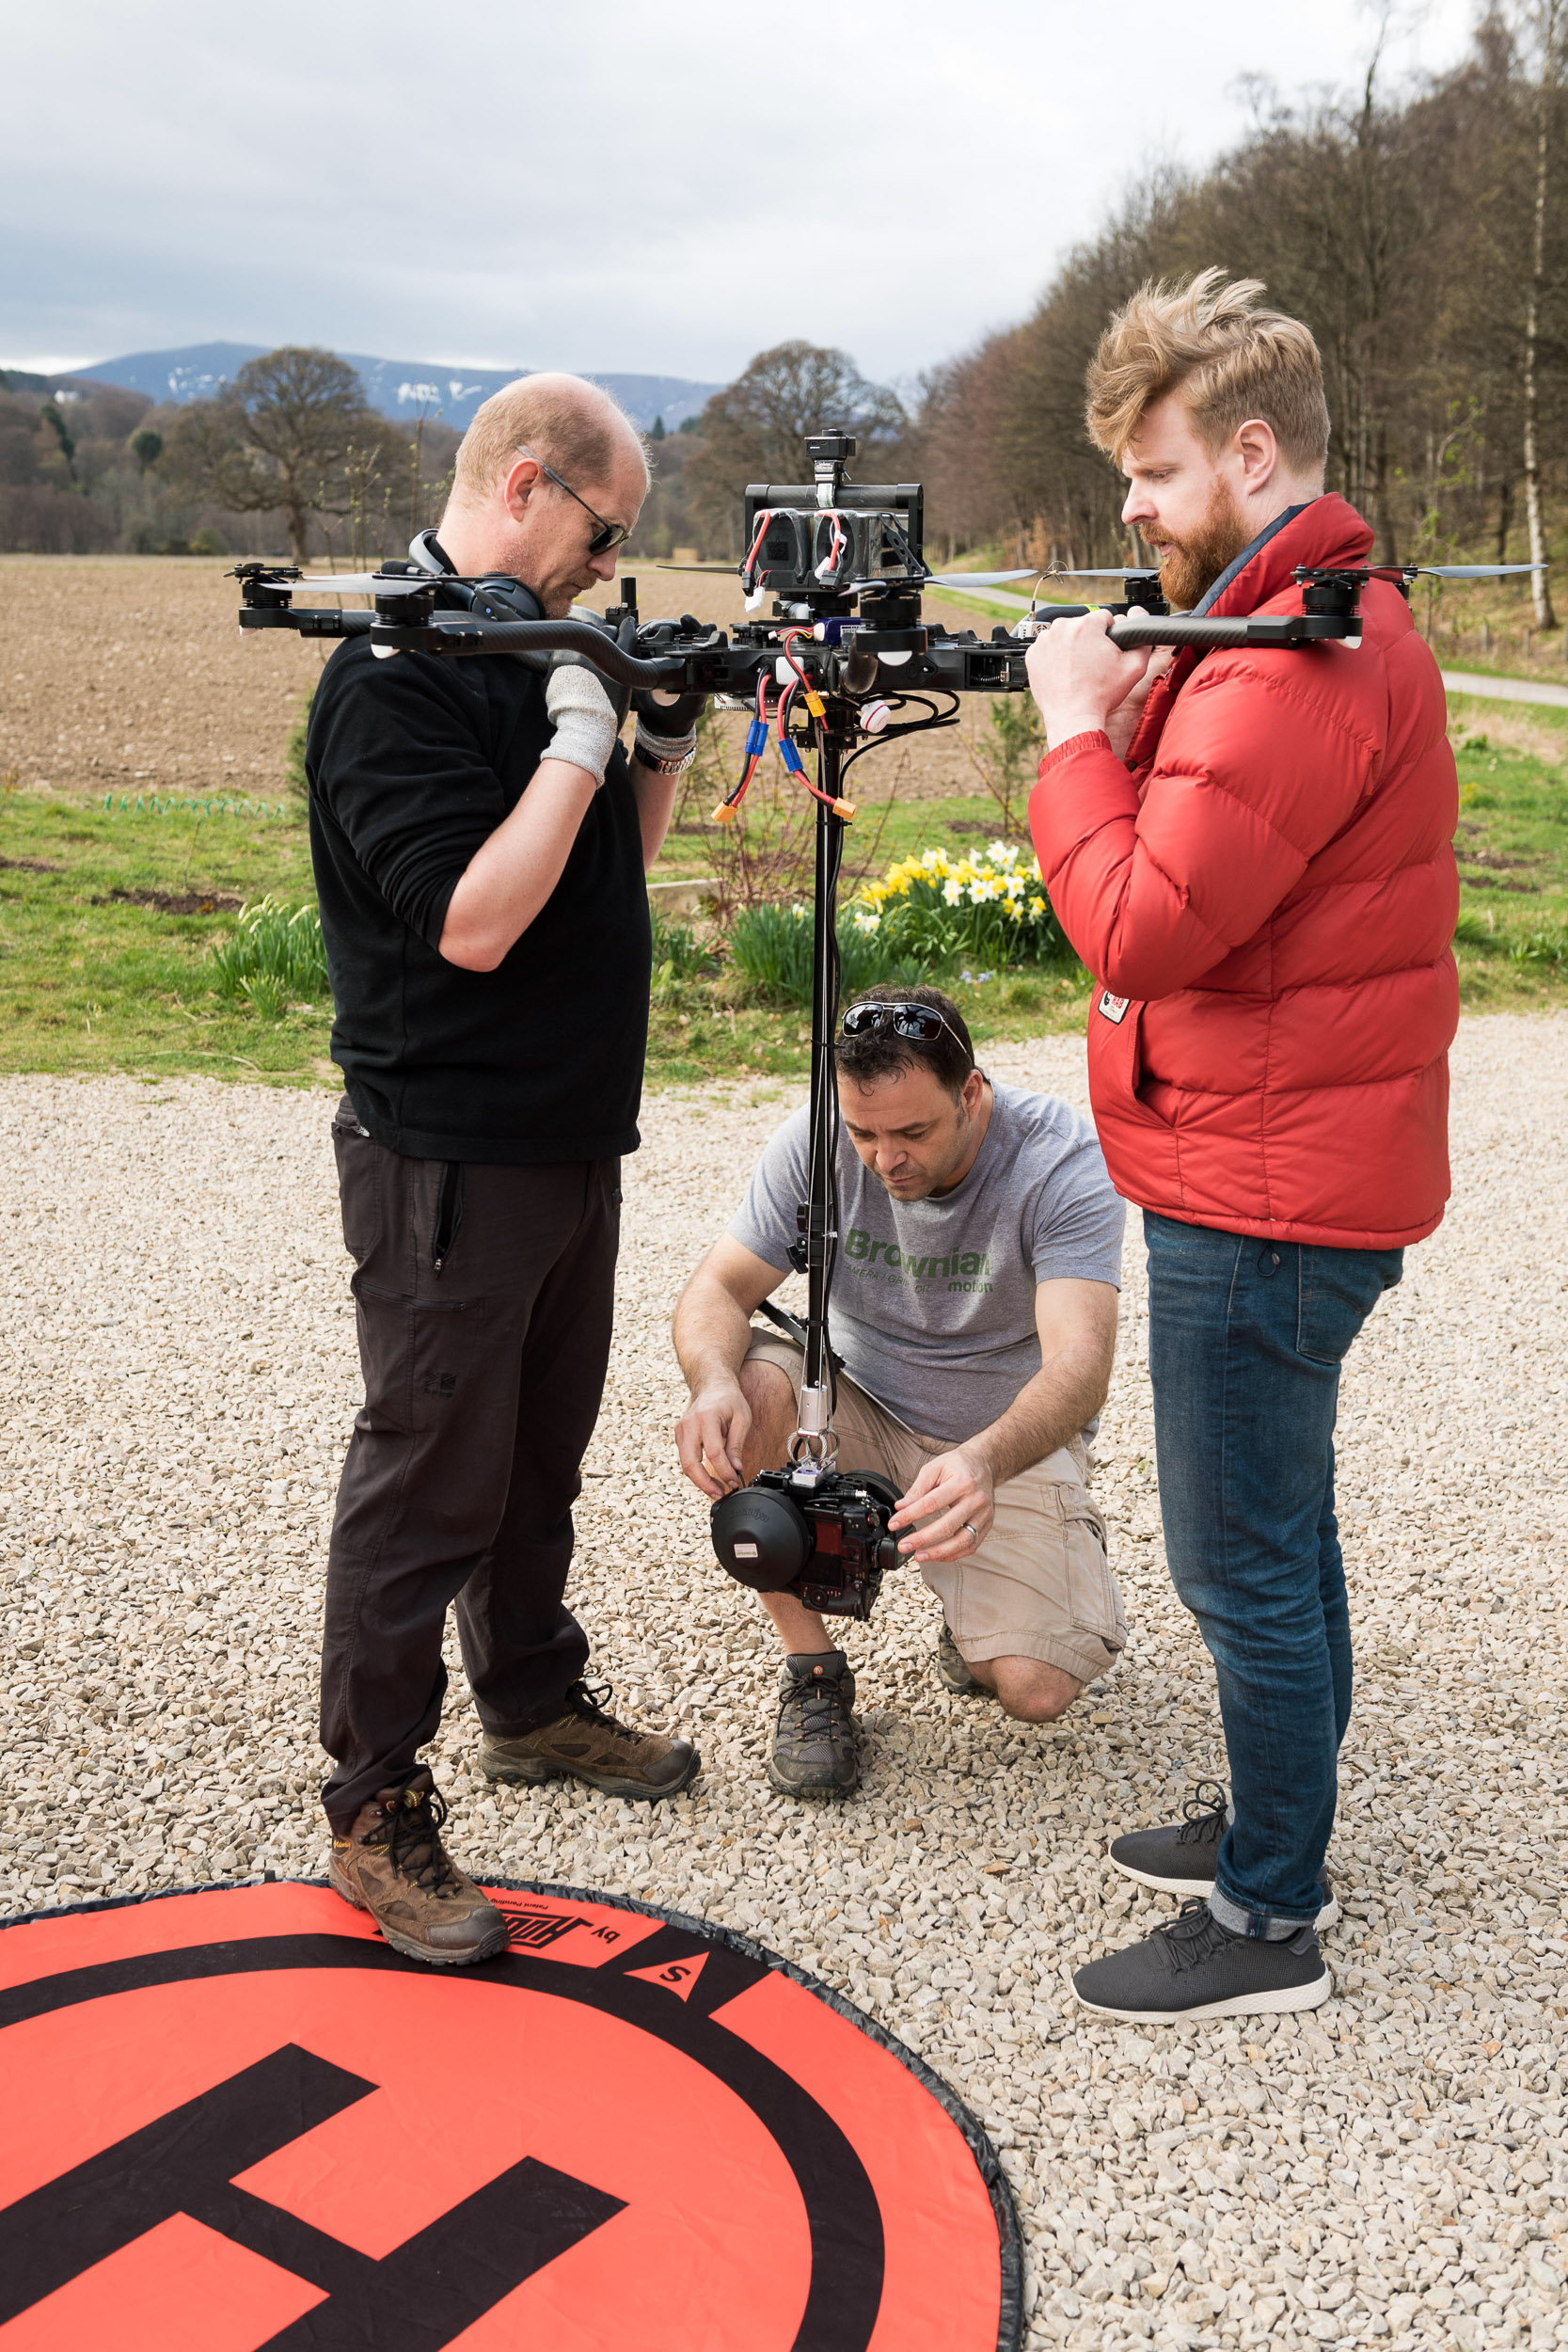 The team setting up the Alta 8 Freefly, preparing the camera's before take-off.